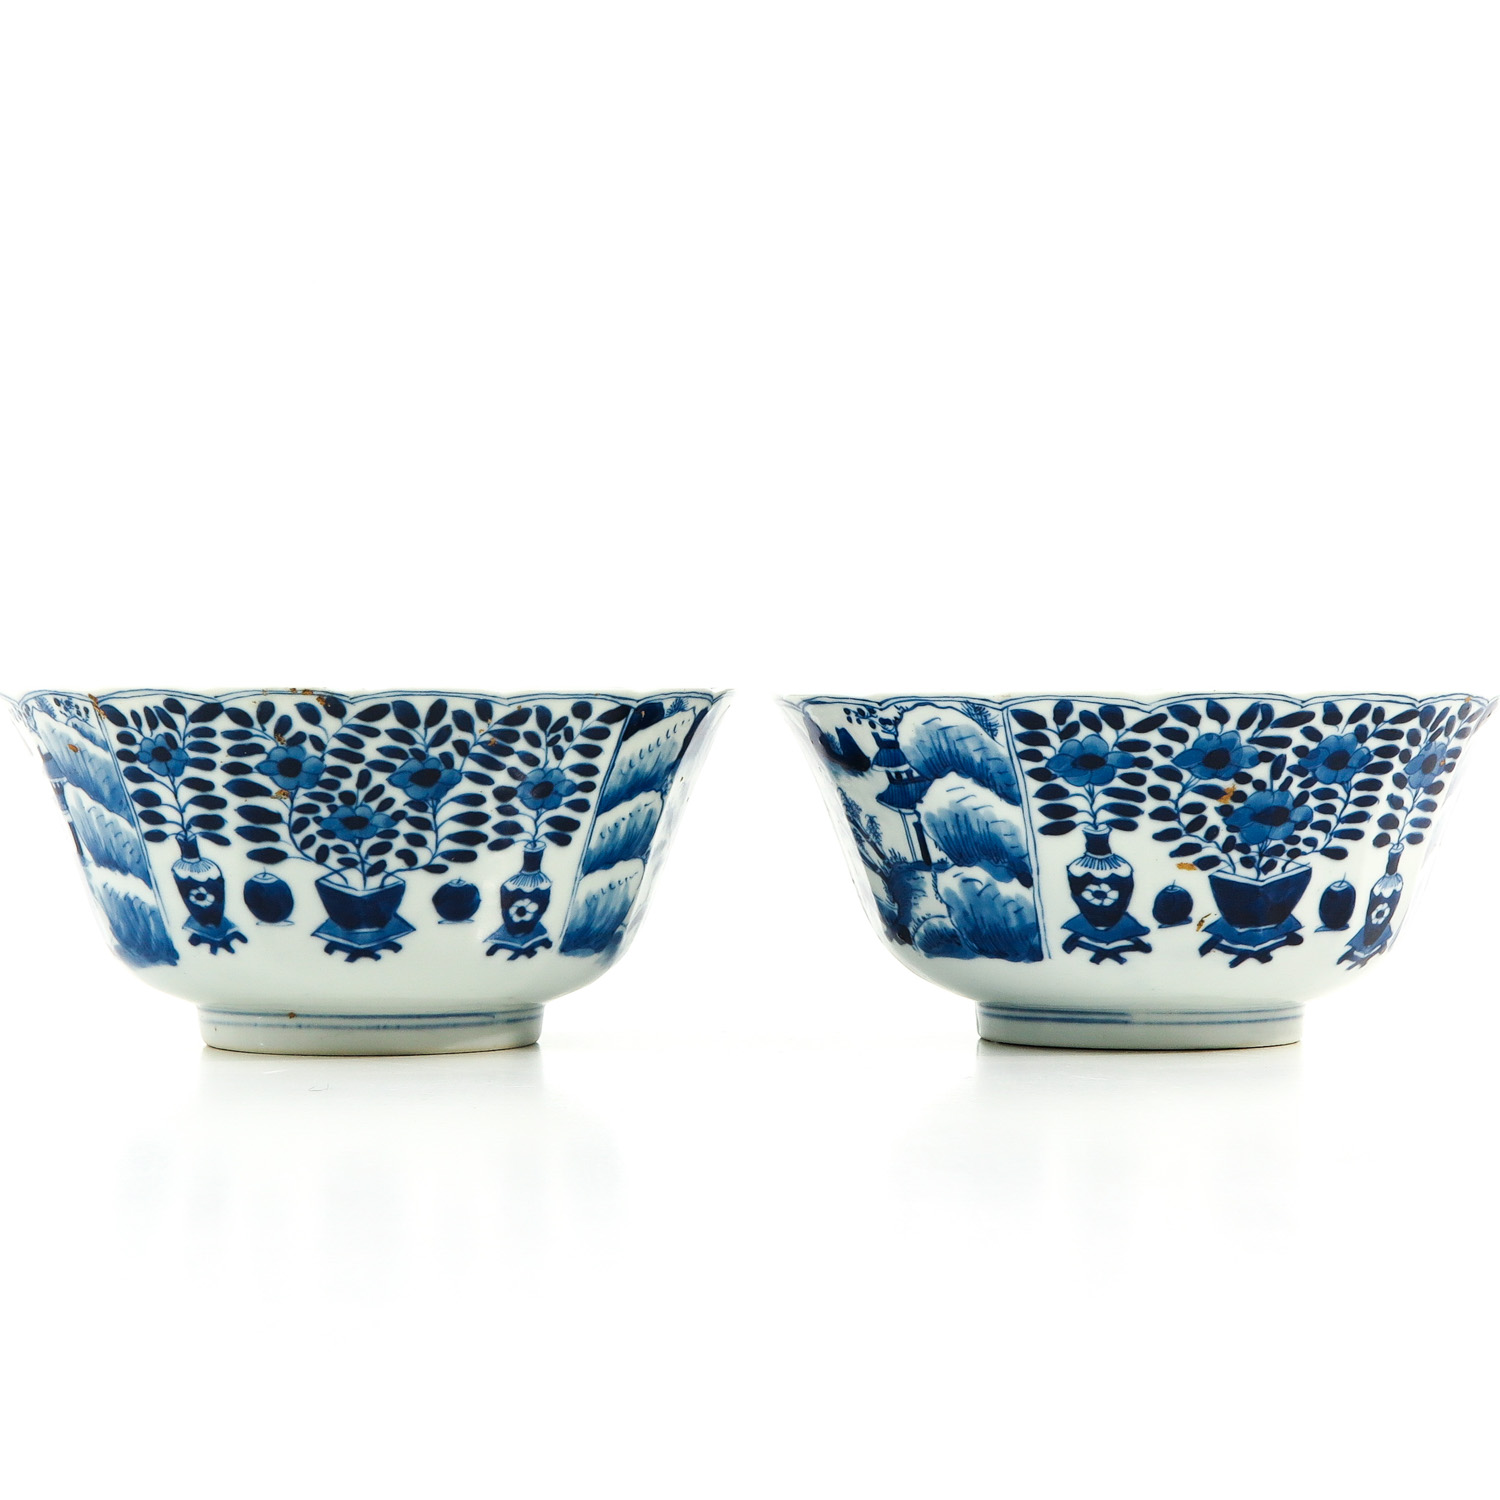 A Pair of Blue and White Bowls - Image 3 of 10